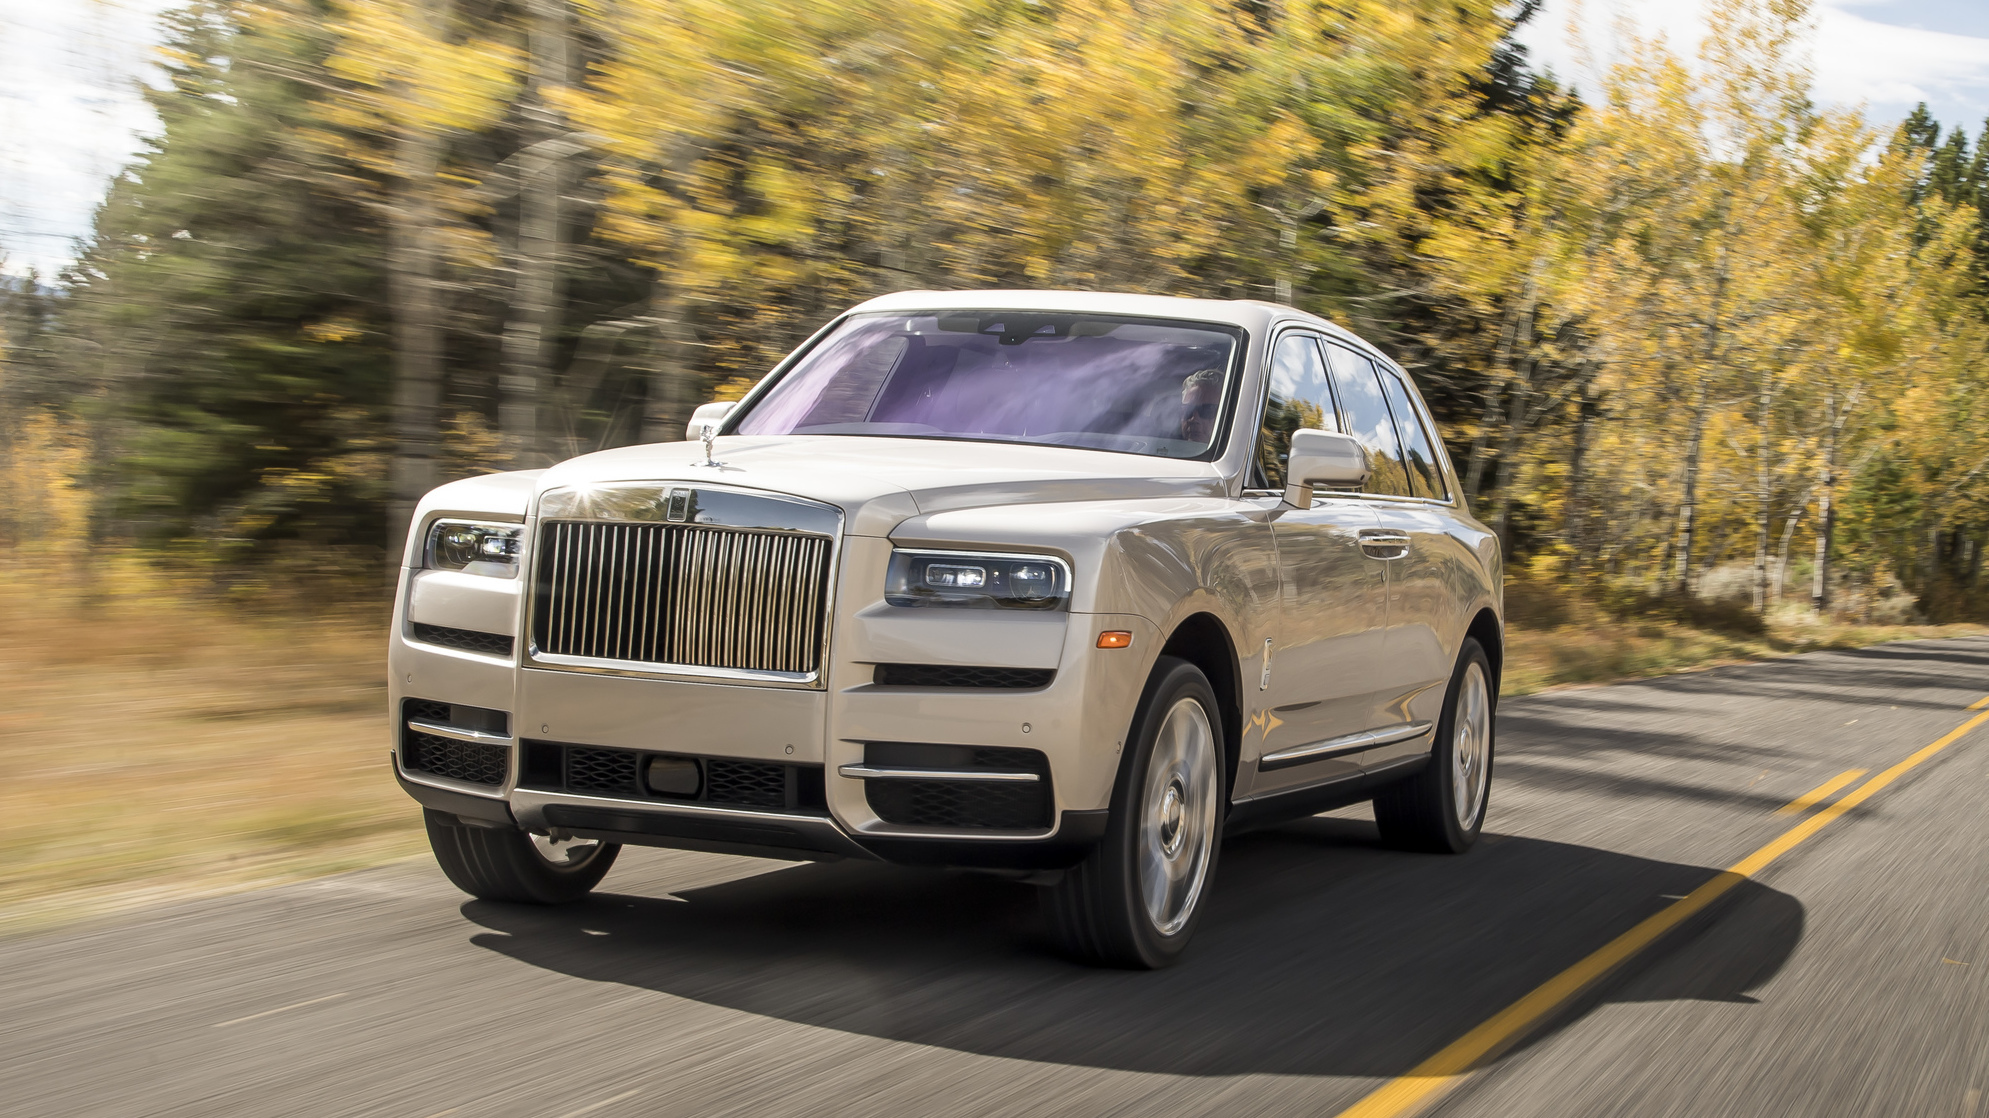 2019 Rolls Royce Cullinan: Design, Powertrain, Release >> 2019 Rolls Royce Cullinan On And Offroad Review Autoblog